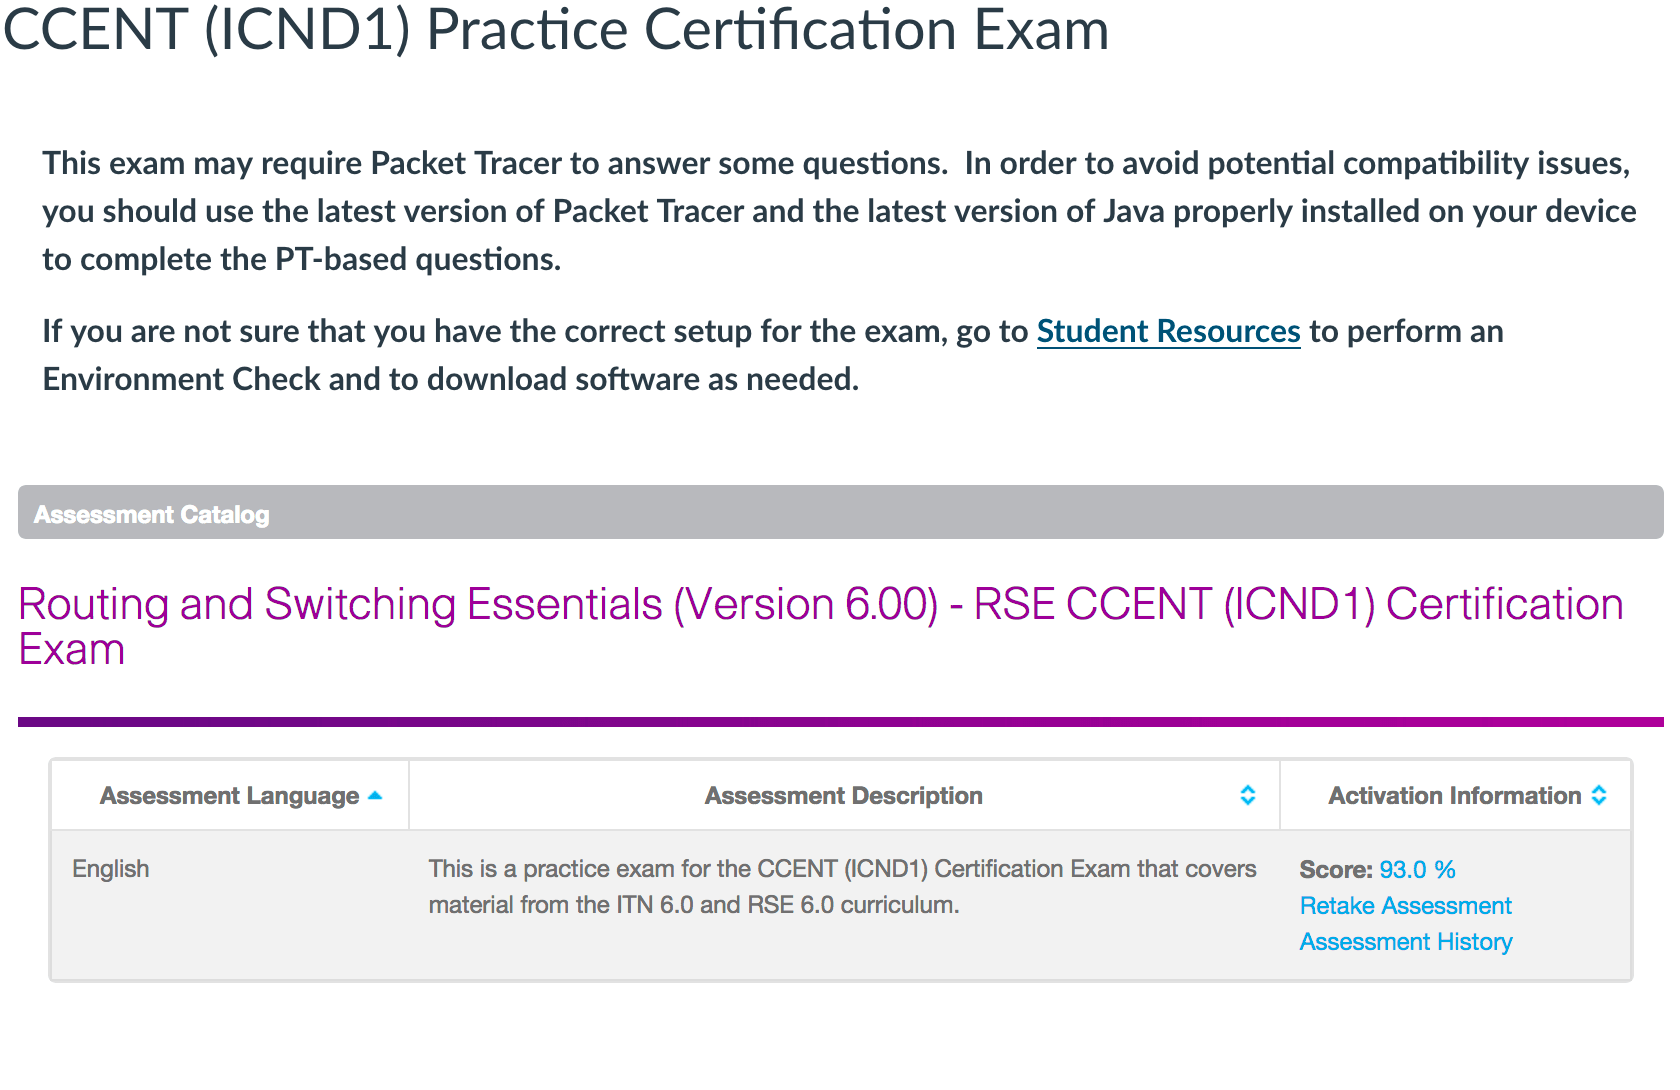 CCENT (ICND1) Practice Certification Exam can help you with this course